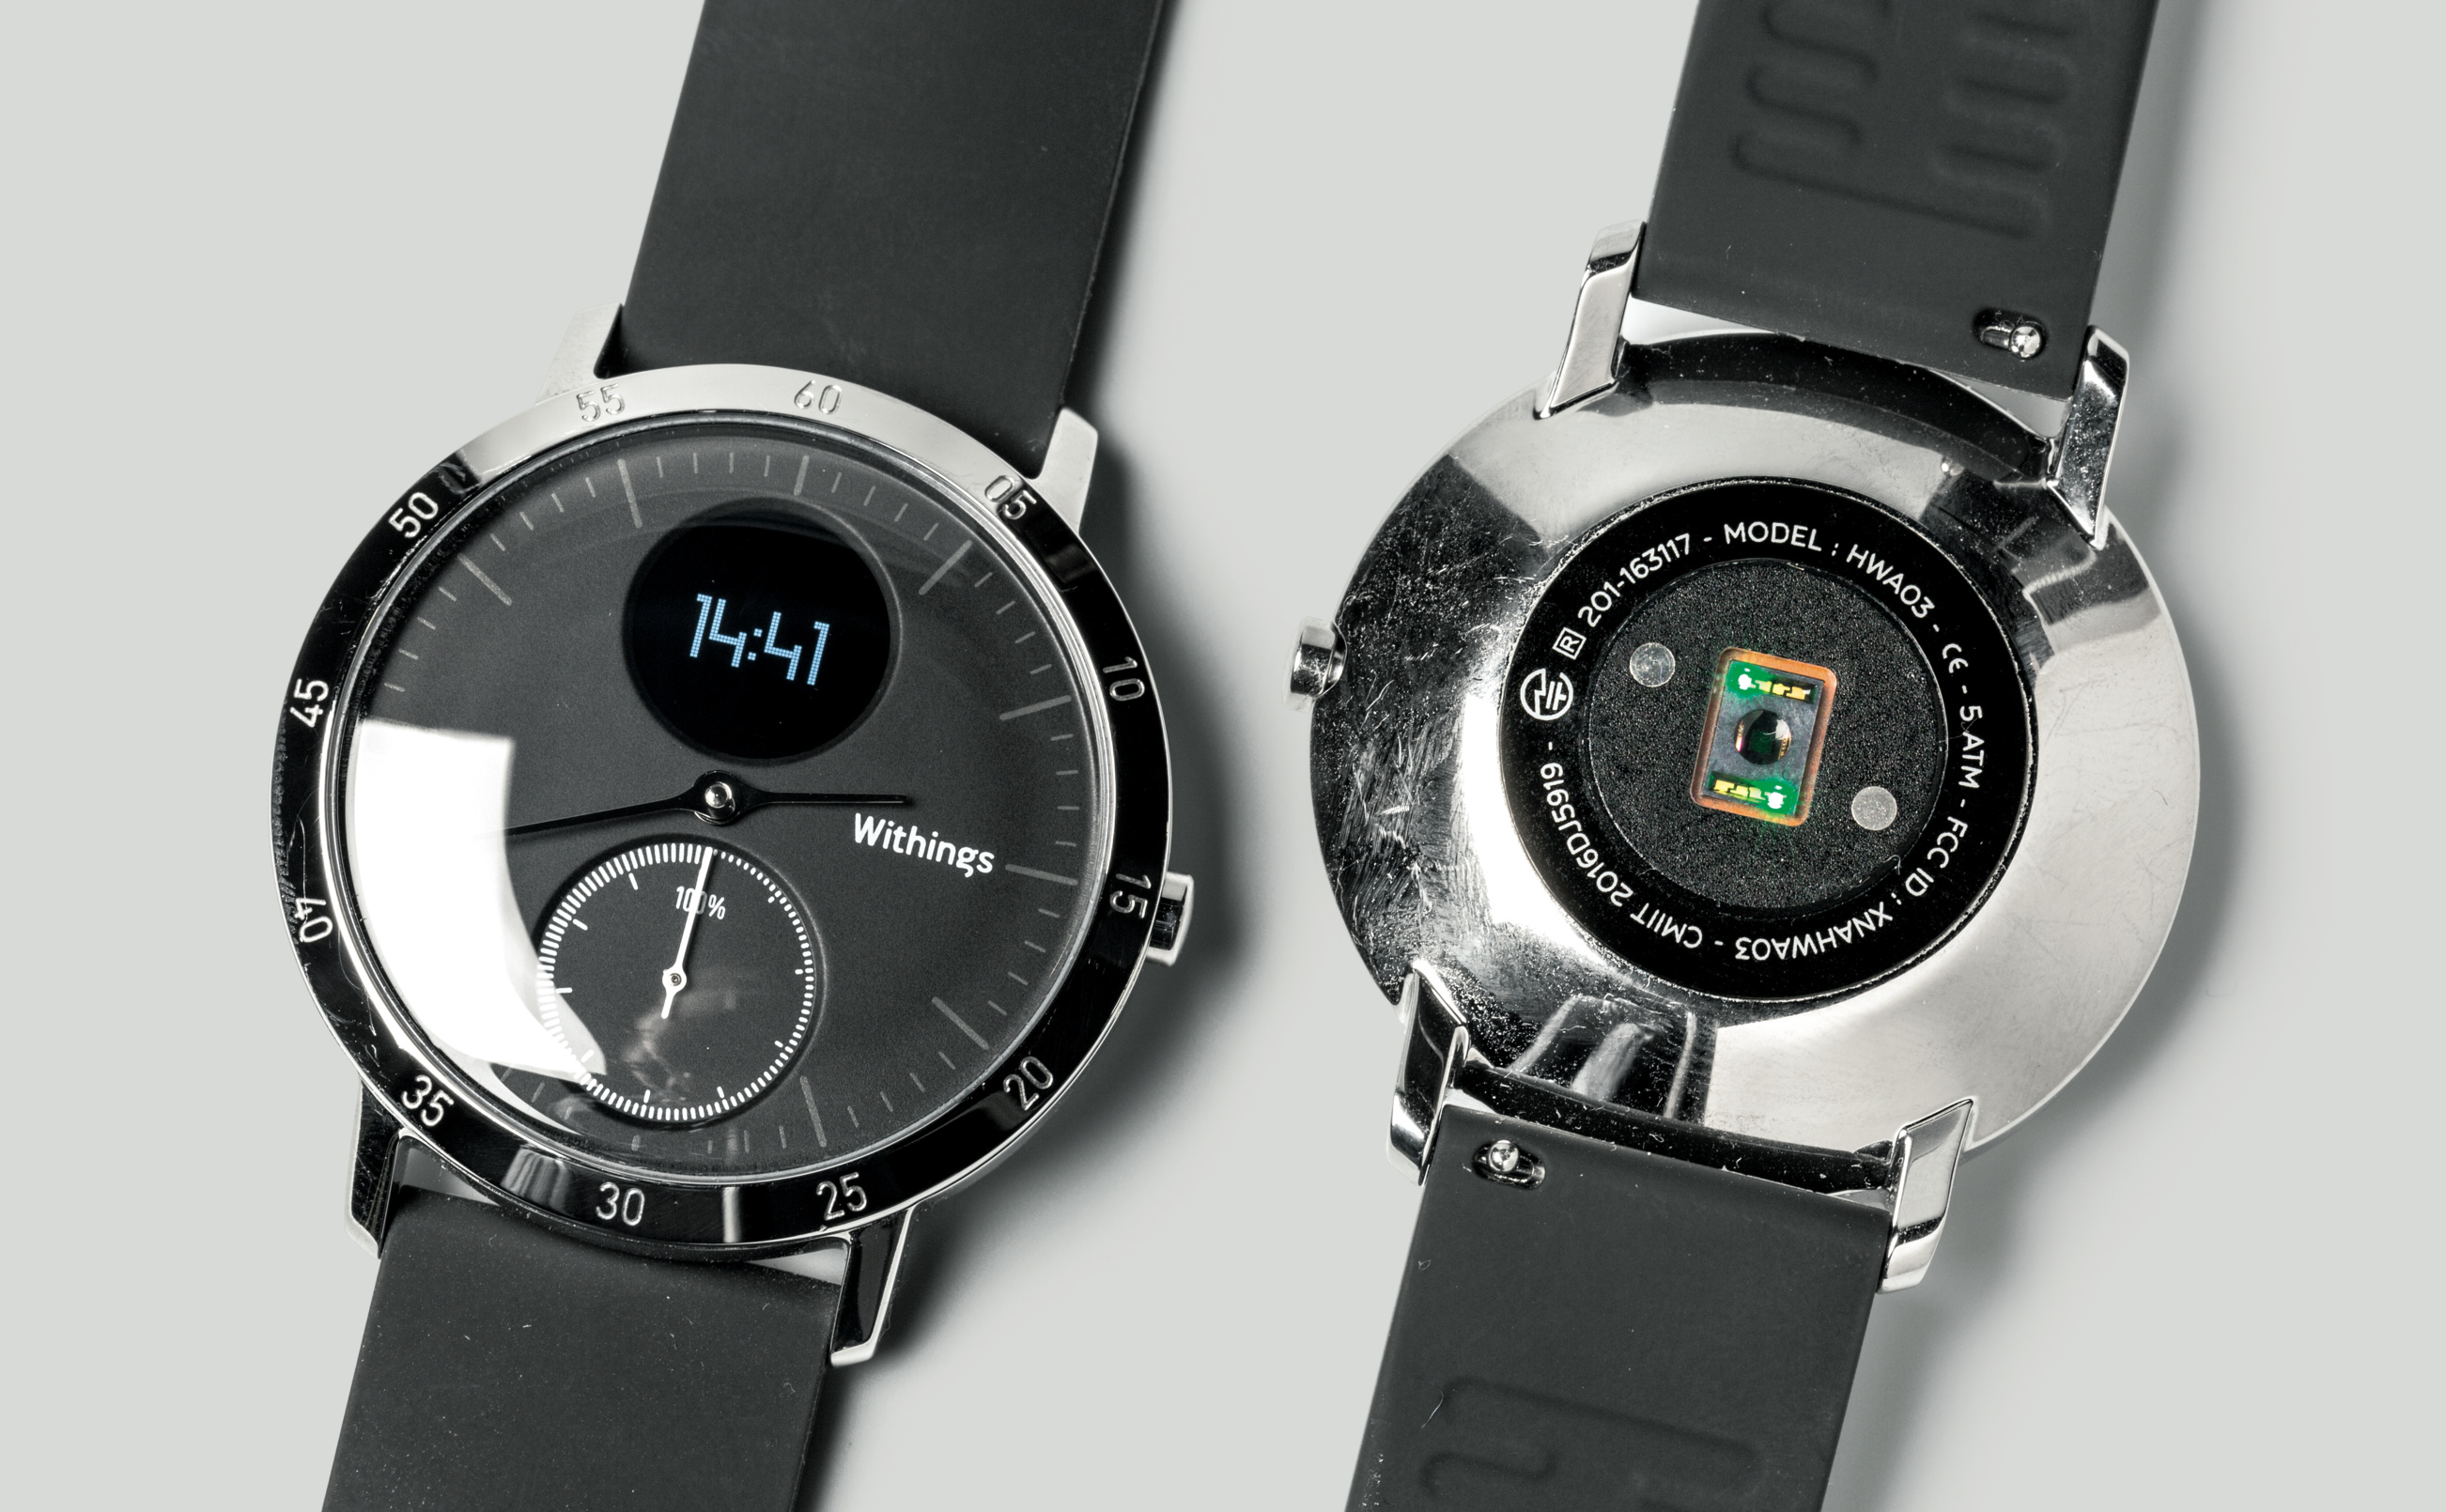 mvoice as days all i am to huge smartwatch also be watchface at smartwatches does love martian top seem the watches features review fan we having these said of rare this that hybrid a